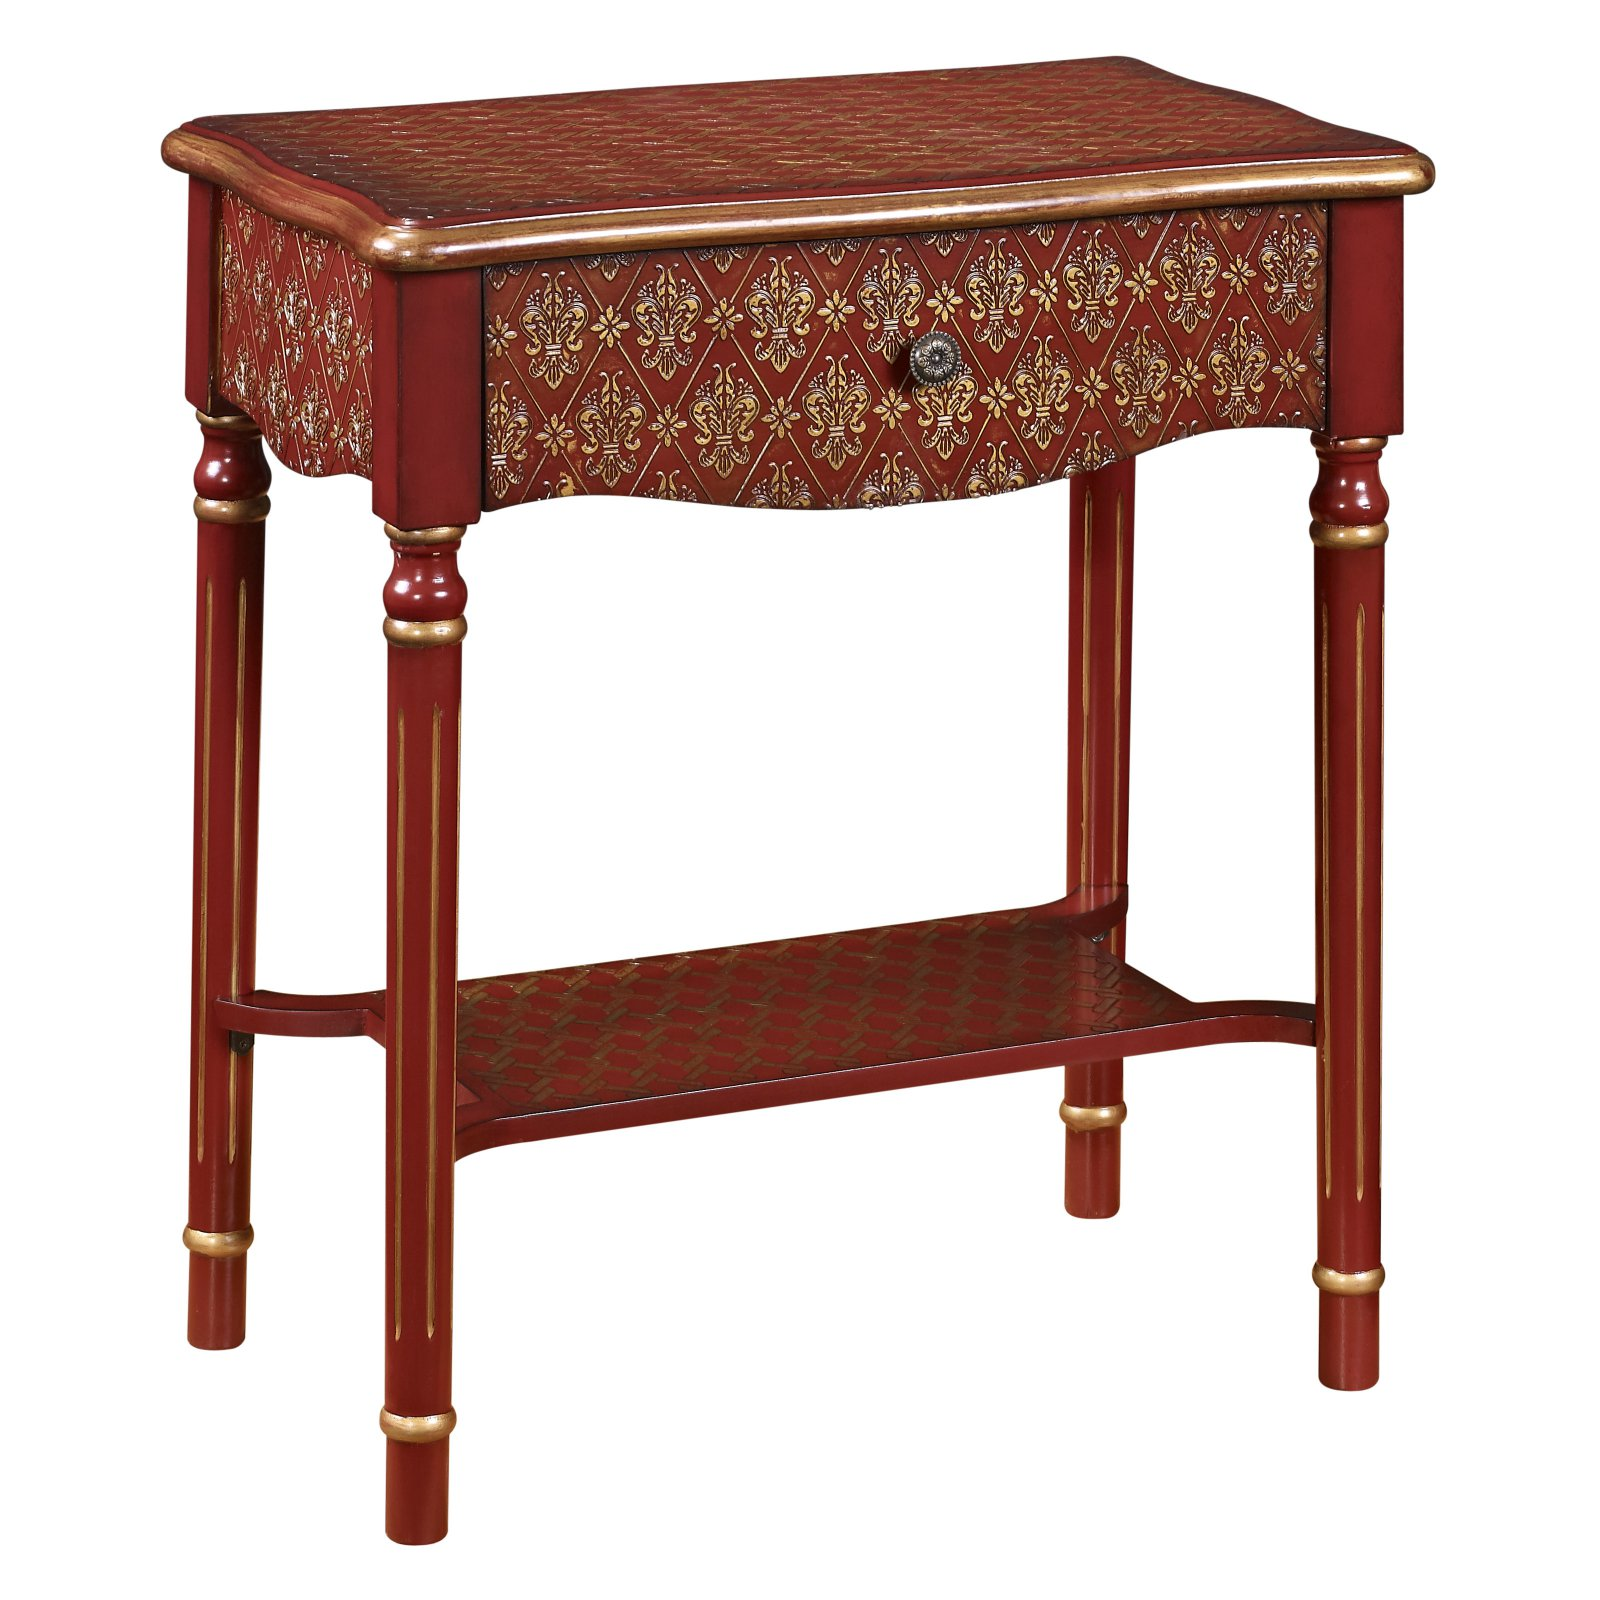 Drawer Accent Table, Red and Gold Asian Influence